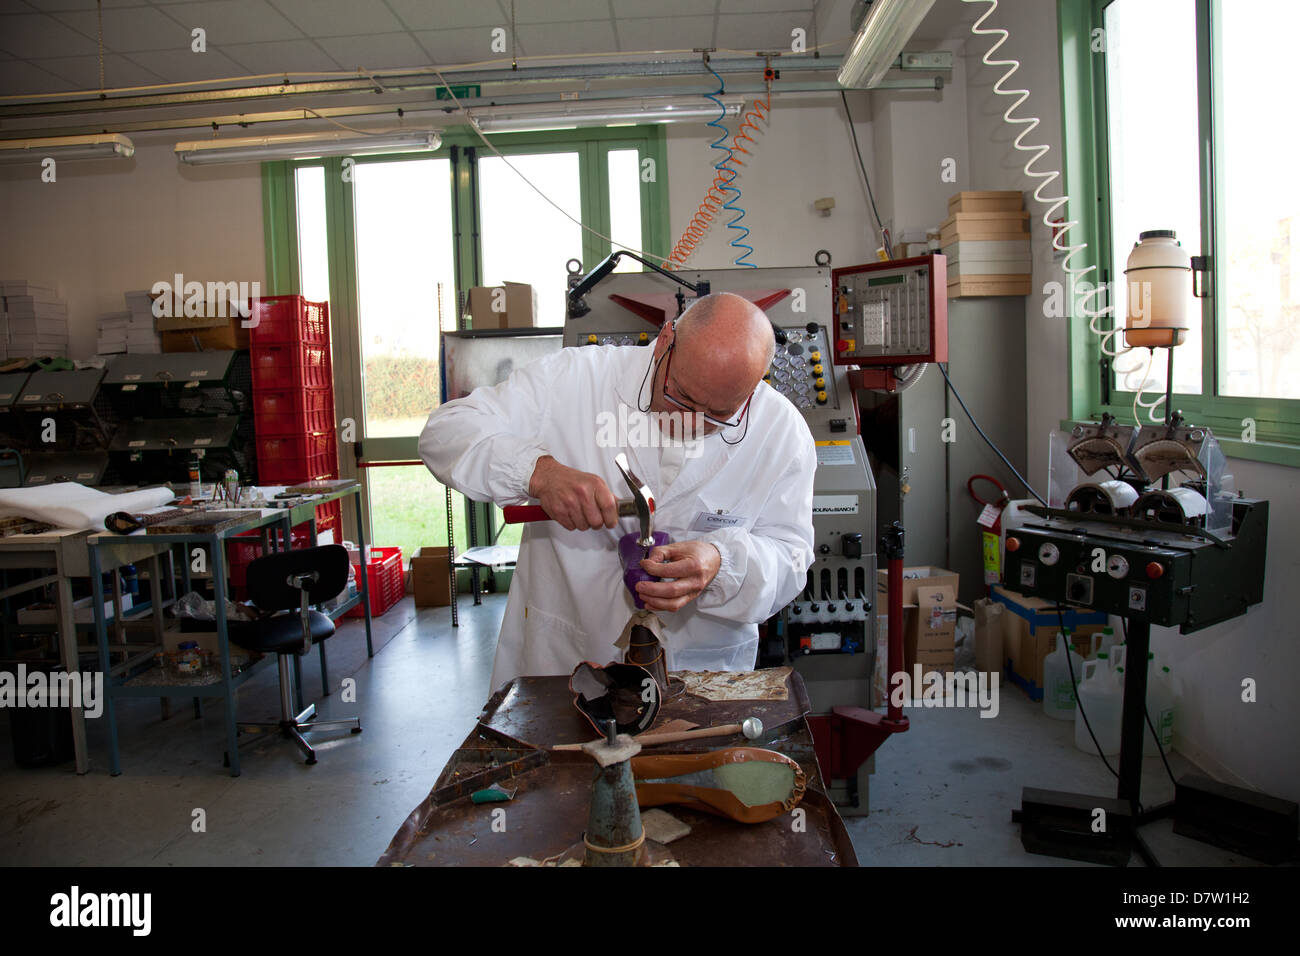 Teacher at work at Cercal footwear school and research center, San Mauro Pascoli, Emilia-Romagna, Italy - Stock Image